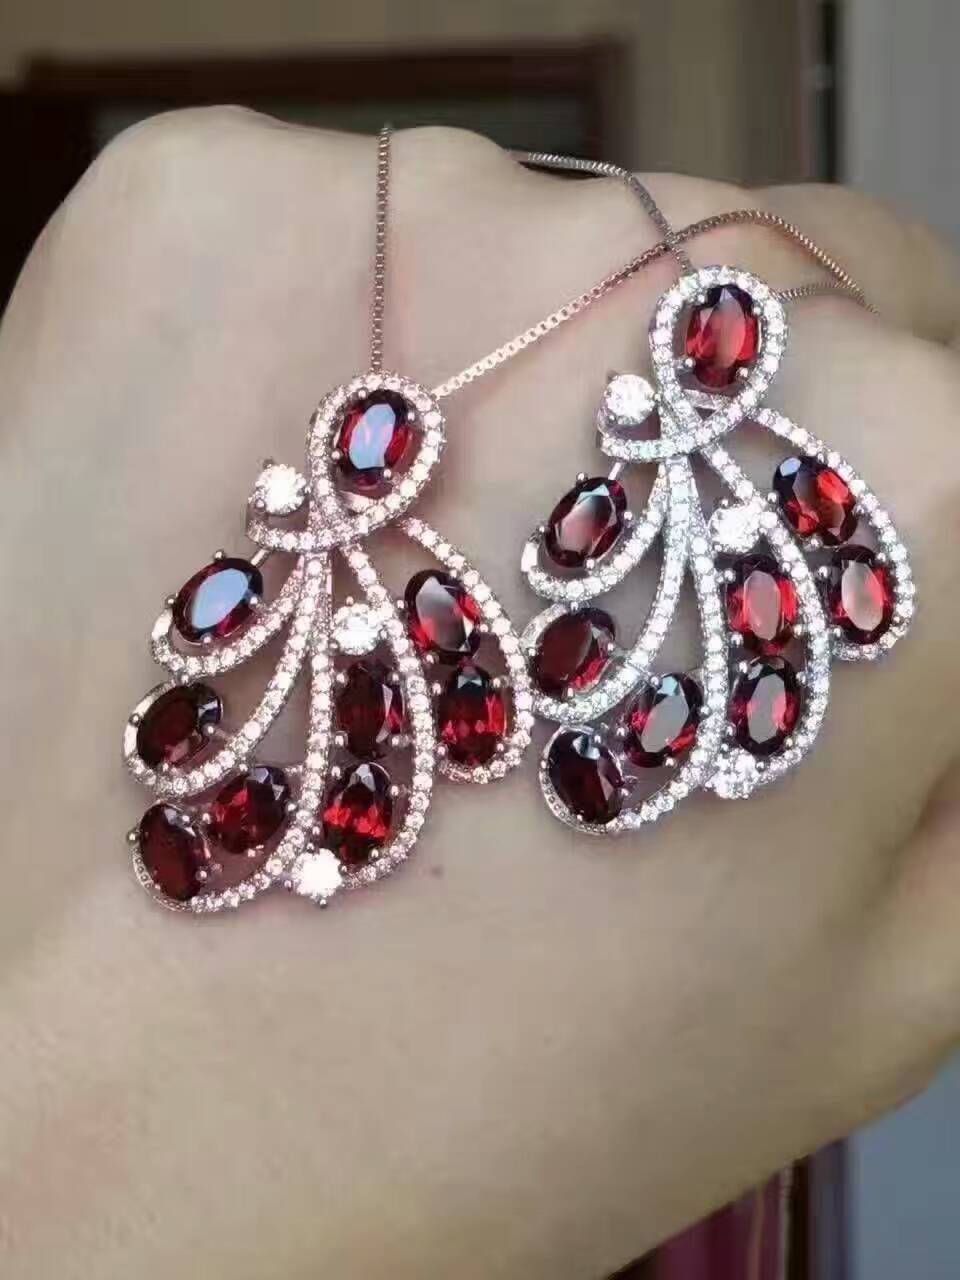 natural red garnet gem pendant S925 silver Natural gemstone Pendant Necklace trendy Luxury Leaf dinette Phoenix tai girl jewelrynatural red garnet gem pendant S925 silver Natural gemstone Pendant Necklace trendy Luxury Leaf dinette Phoenix tai girl jewelry